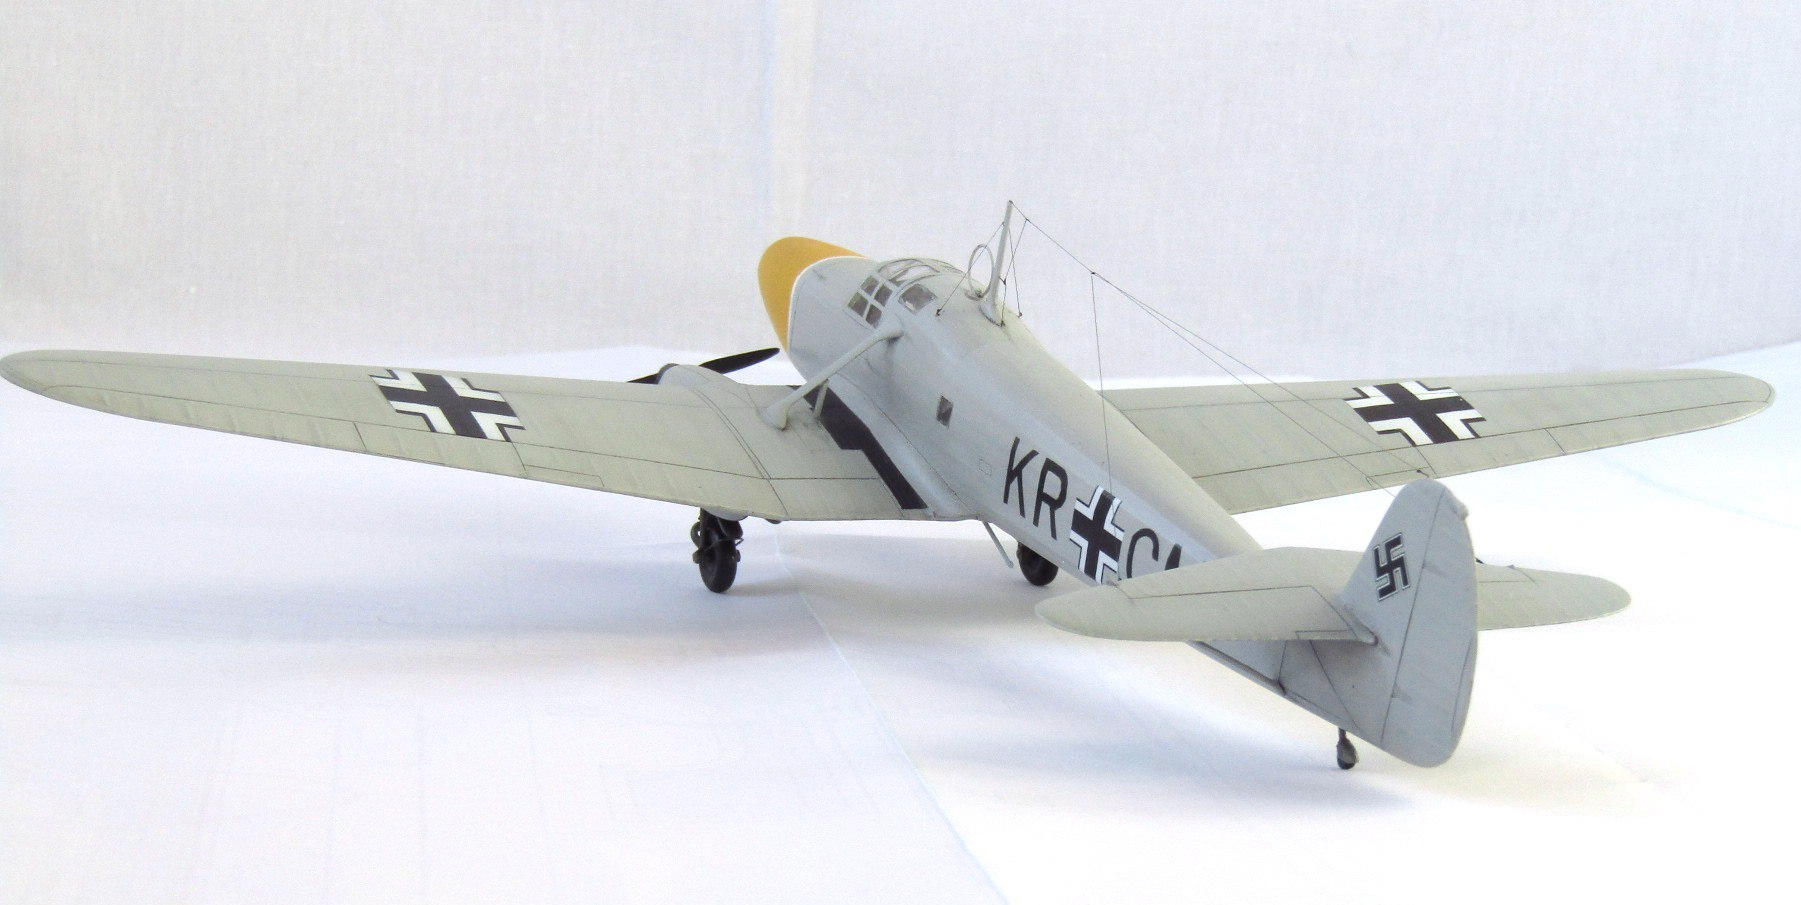 FW - 58C weihe 1/72 (Special Hobby) LM31d7Gs9UA